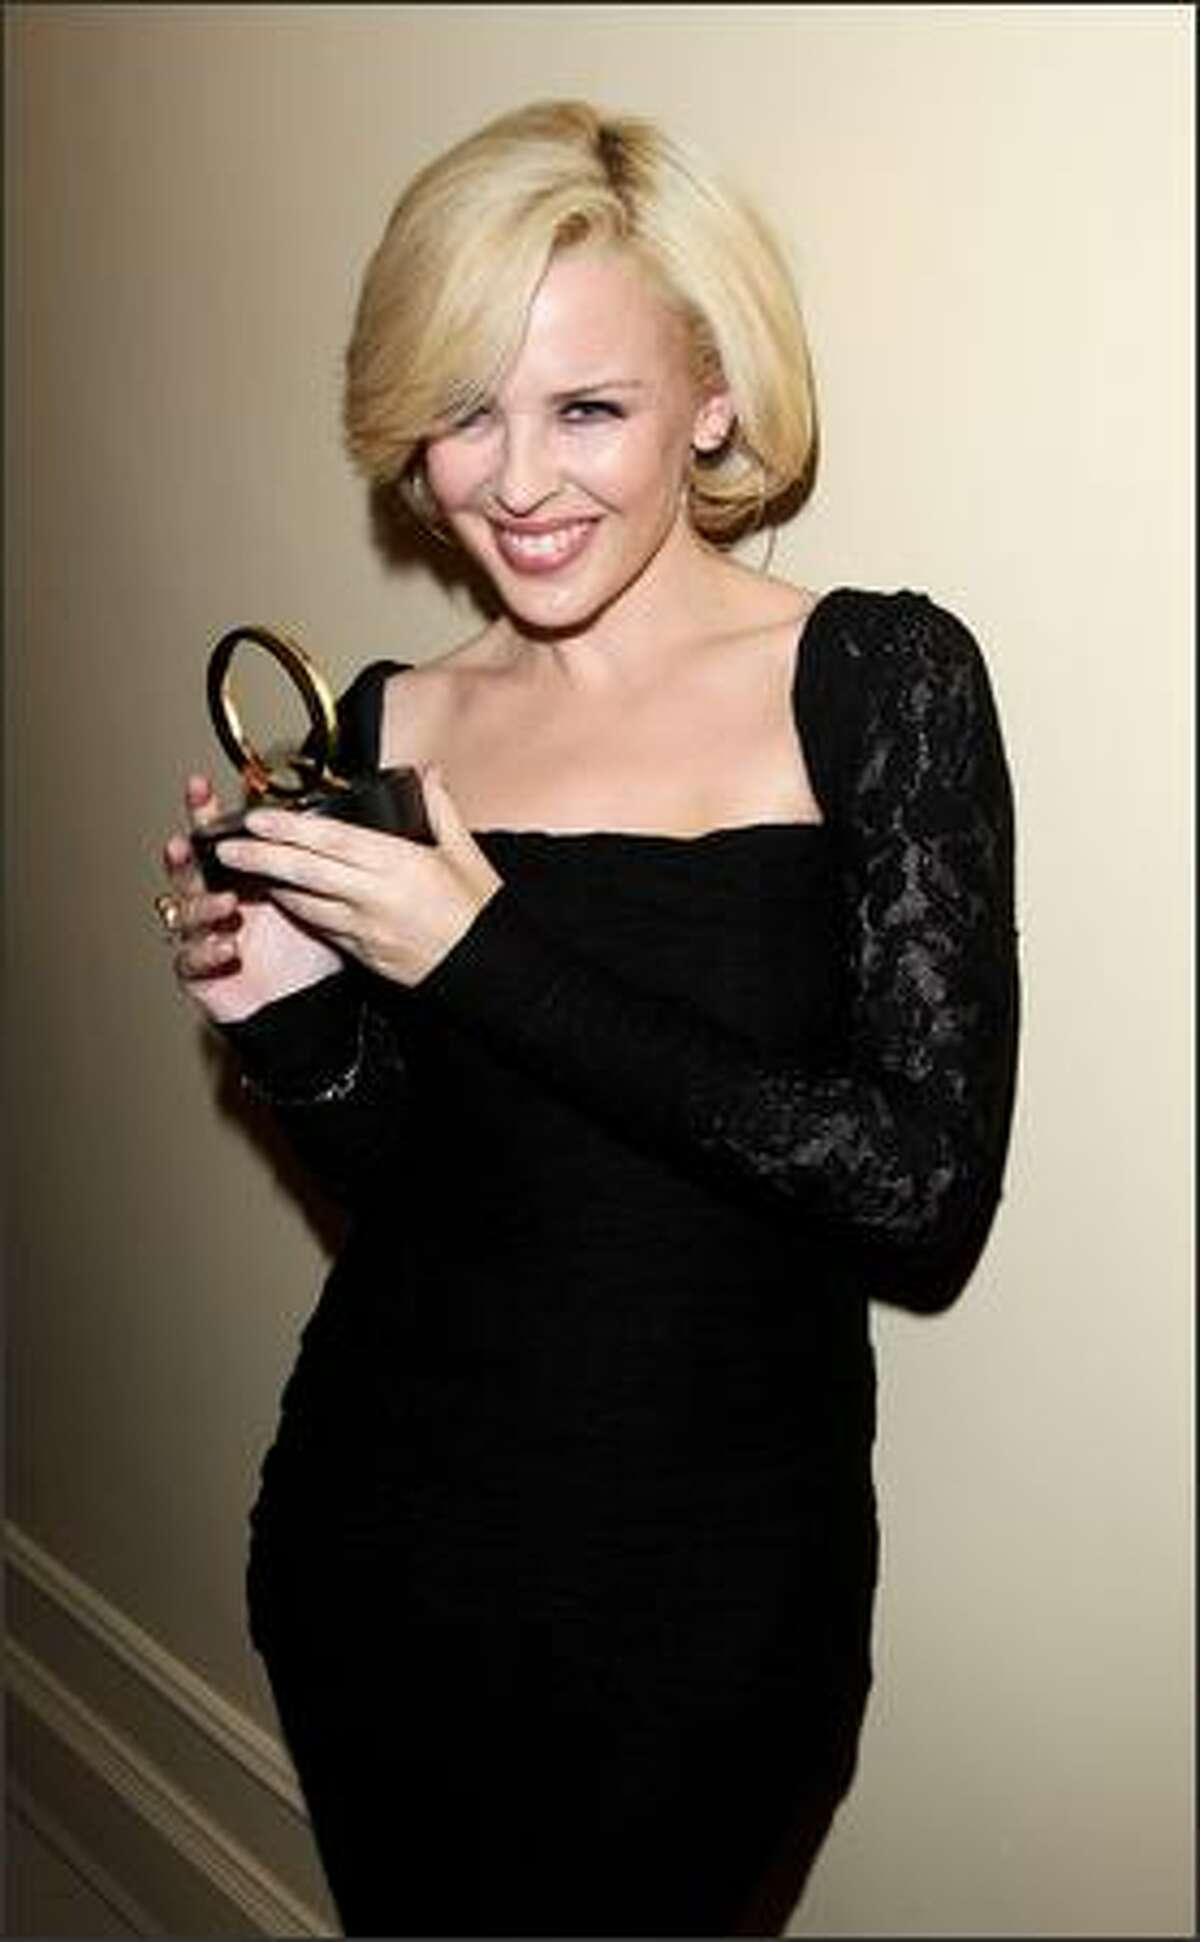 Kylie Minogue poses with the Q Idol award in the awards room at the Q Awards at the Grosvenor Hotel on October 8, 2007 in London, England.